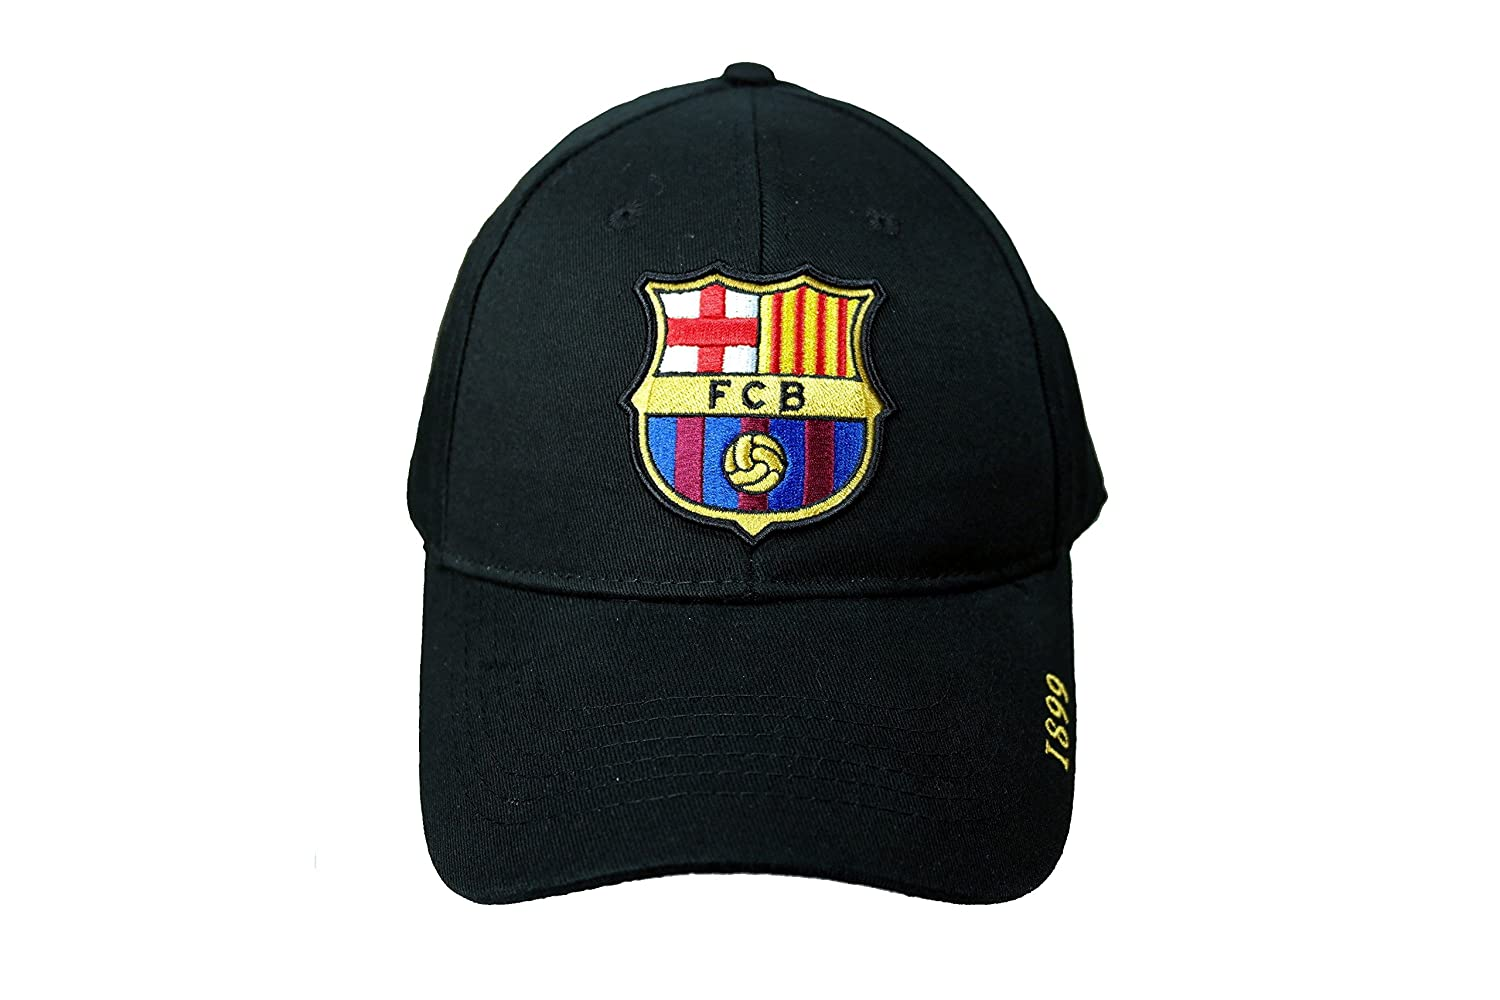 FC Barcelona Authentic Official Licensed Product Soccerキャップ – 03 – 1   B07BGSV9JT